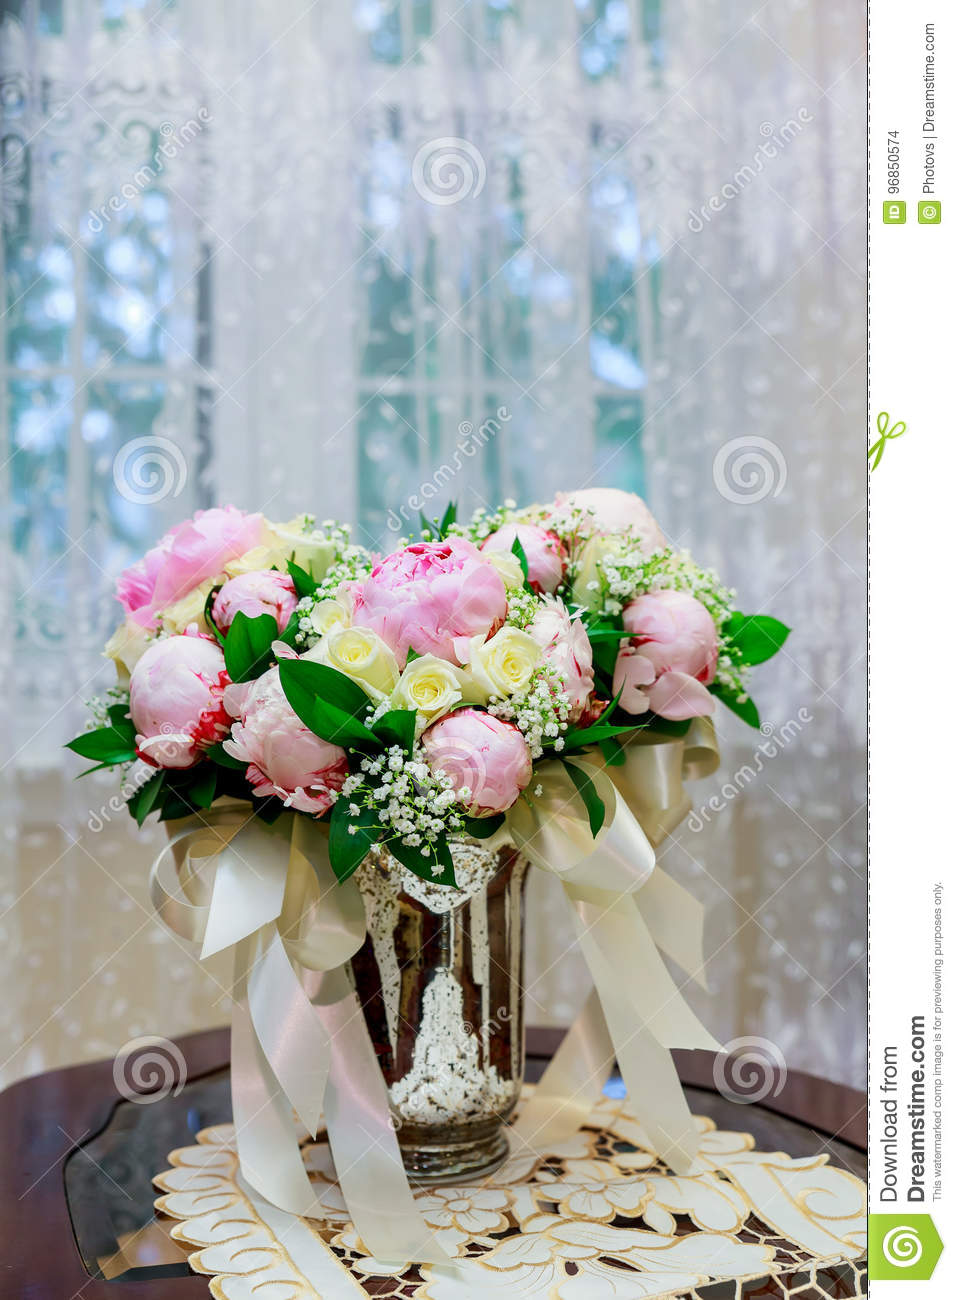 Wedding Bridal Bouquet With White Orchids Daisies And Red Berries